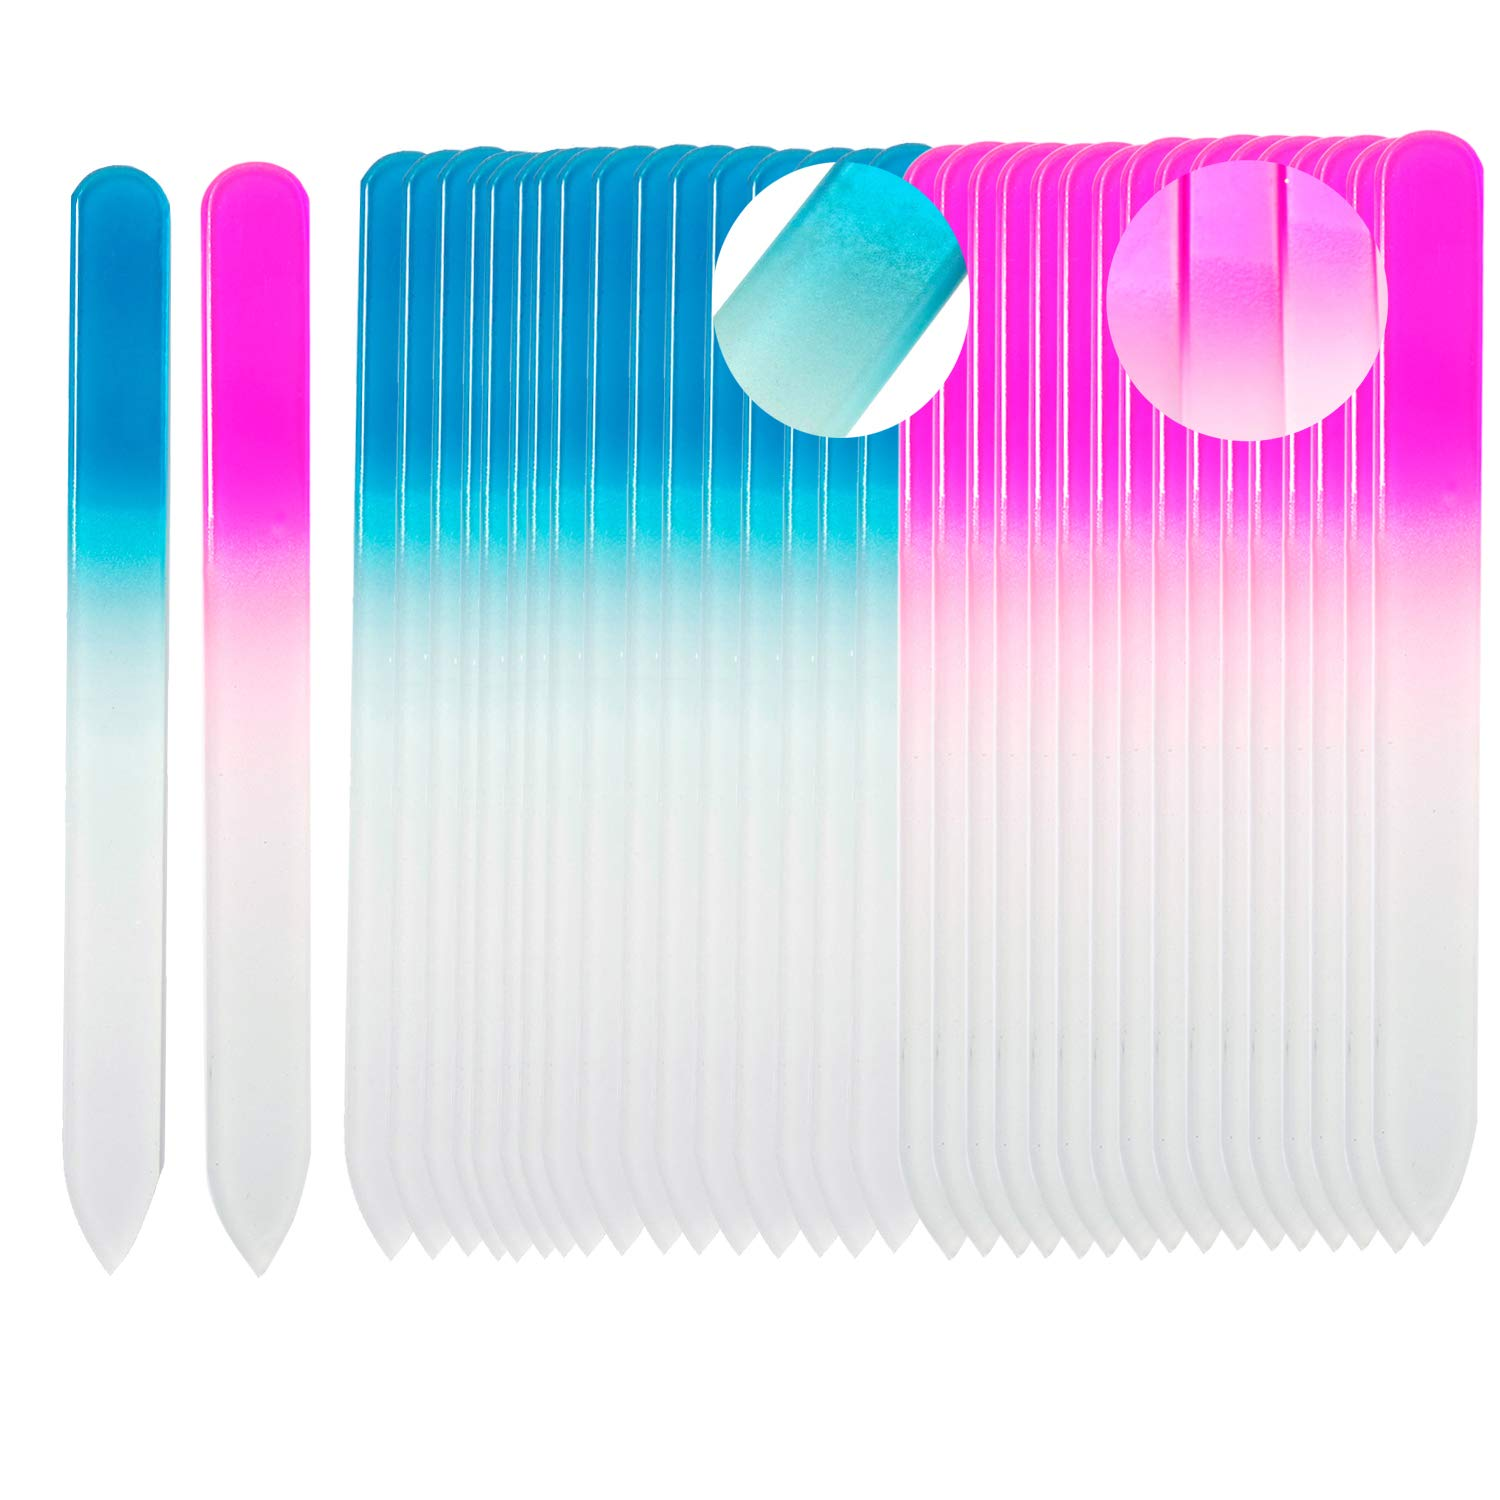 SIUSIO 40 pack Professional Czech Crystal Glass Nail Files Buffer Manicure Tools Kit Set Gradient Rainbow Color for Nail polishing - Best for Fingernail & Toenail Care e(pink&blue) by SIUSIO